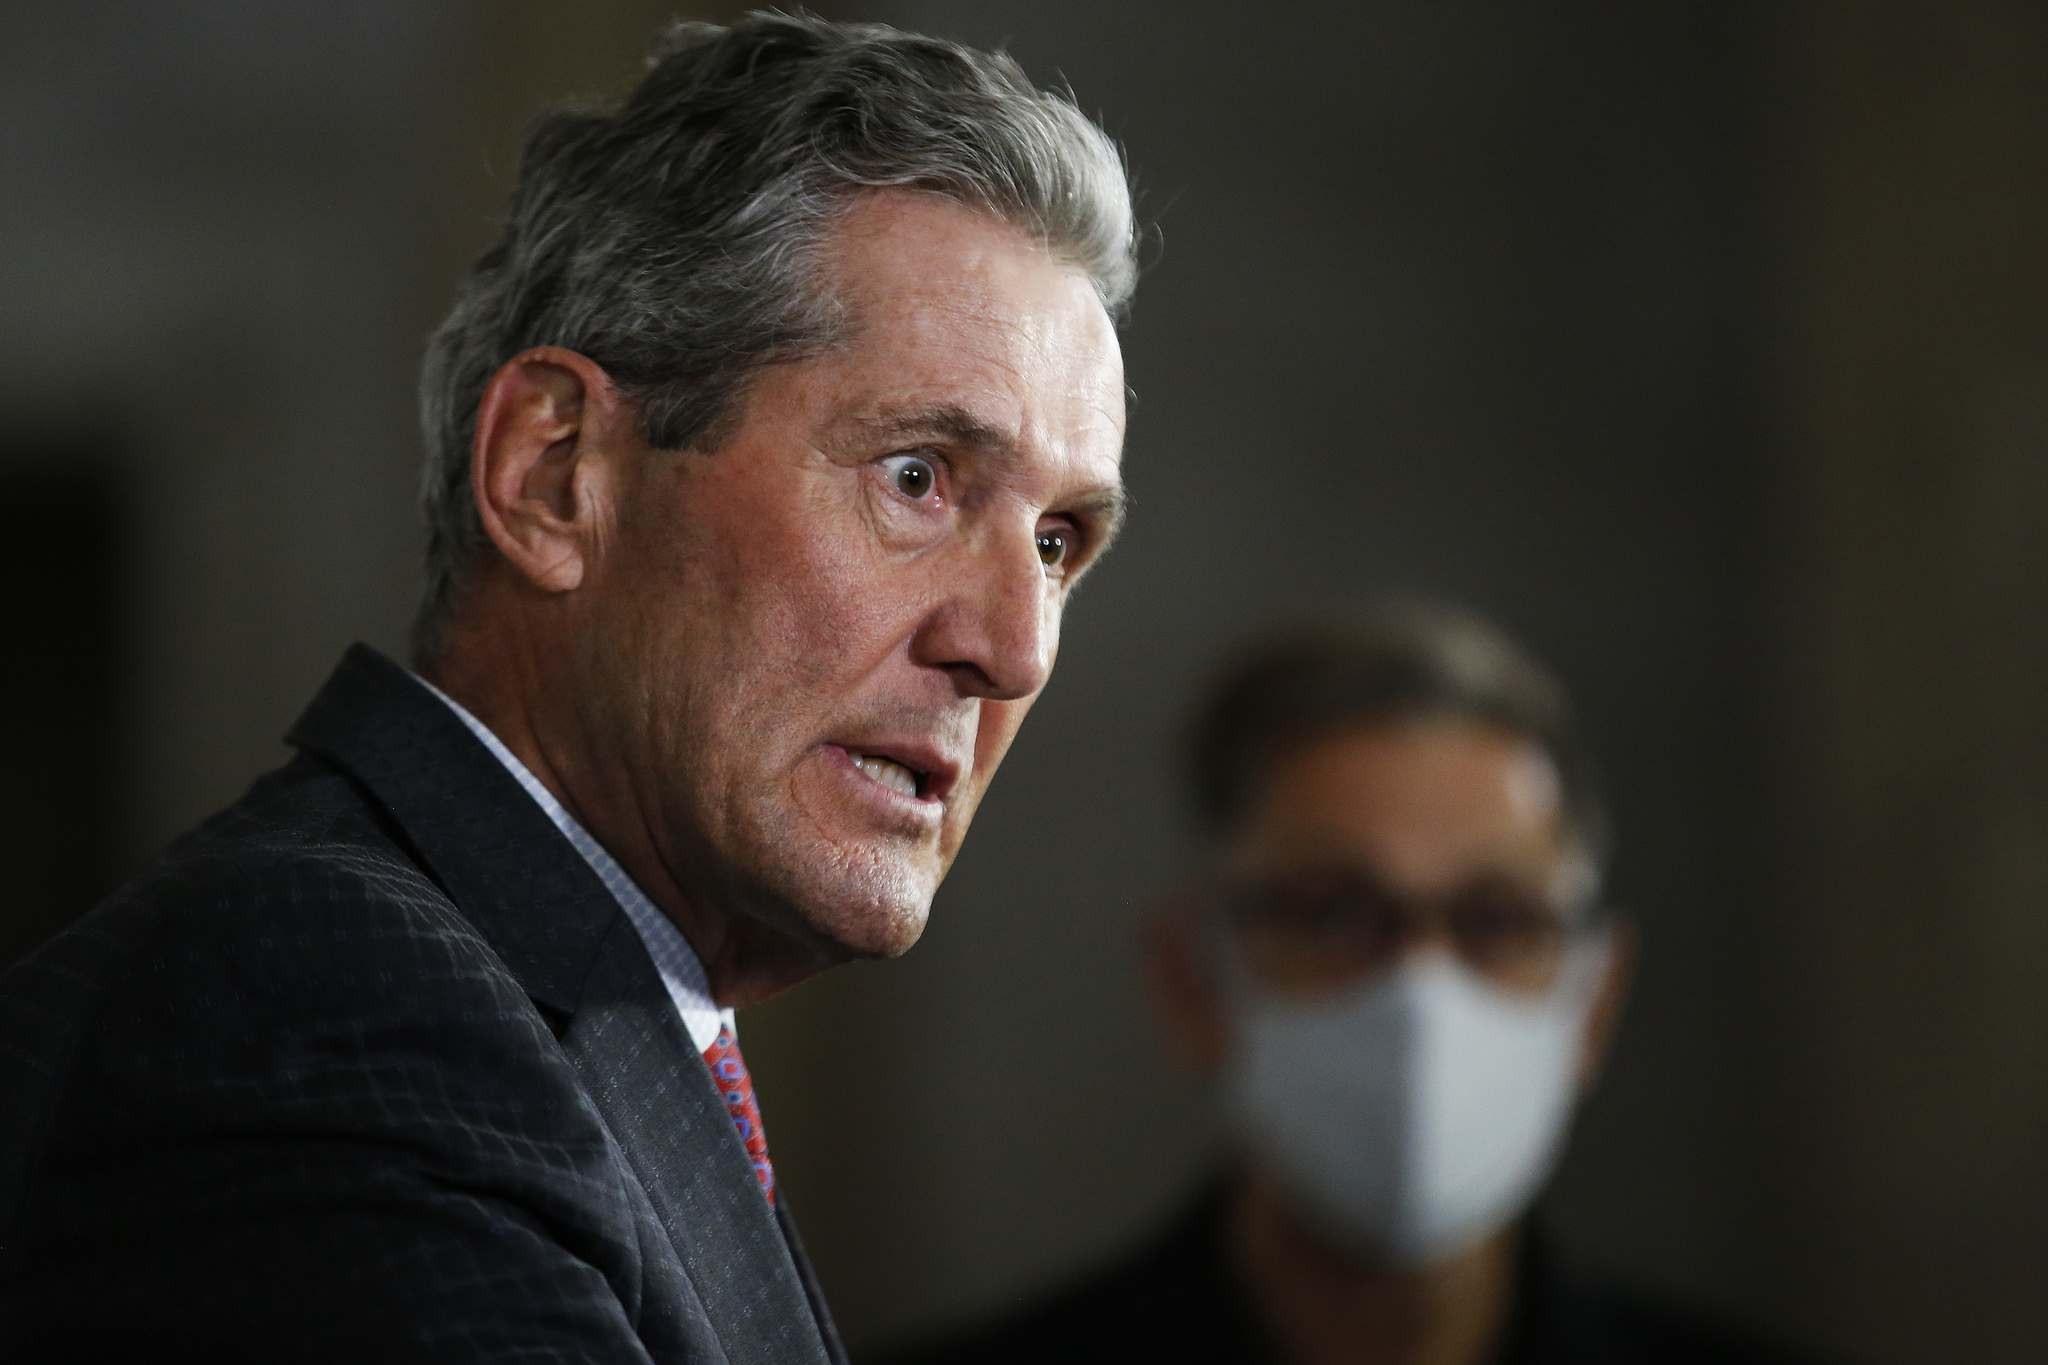 Premier Brian Pallister responded by digging in his heels, indicating the province will keep fighting.